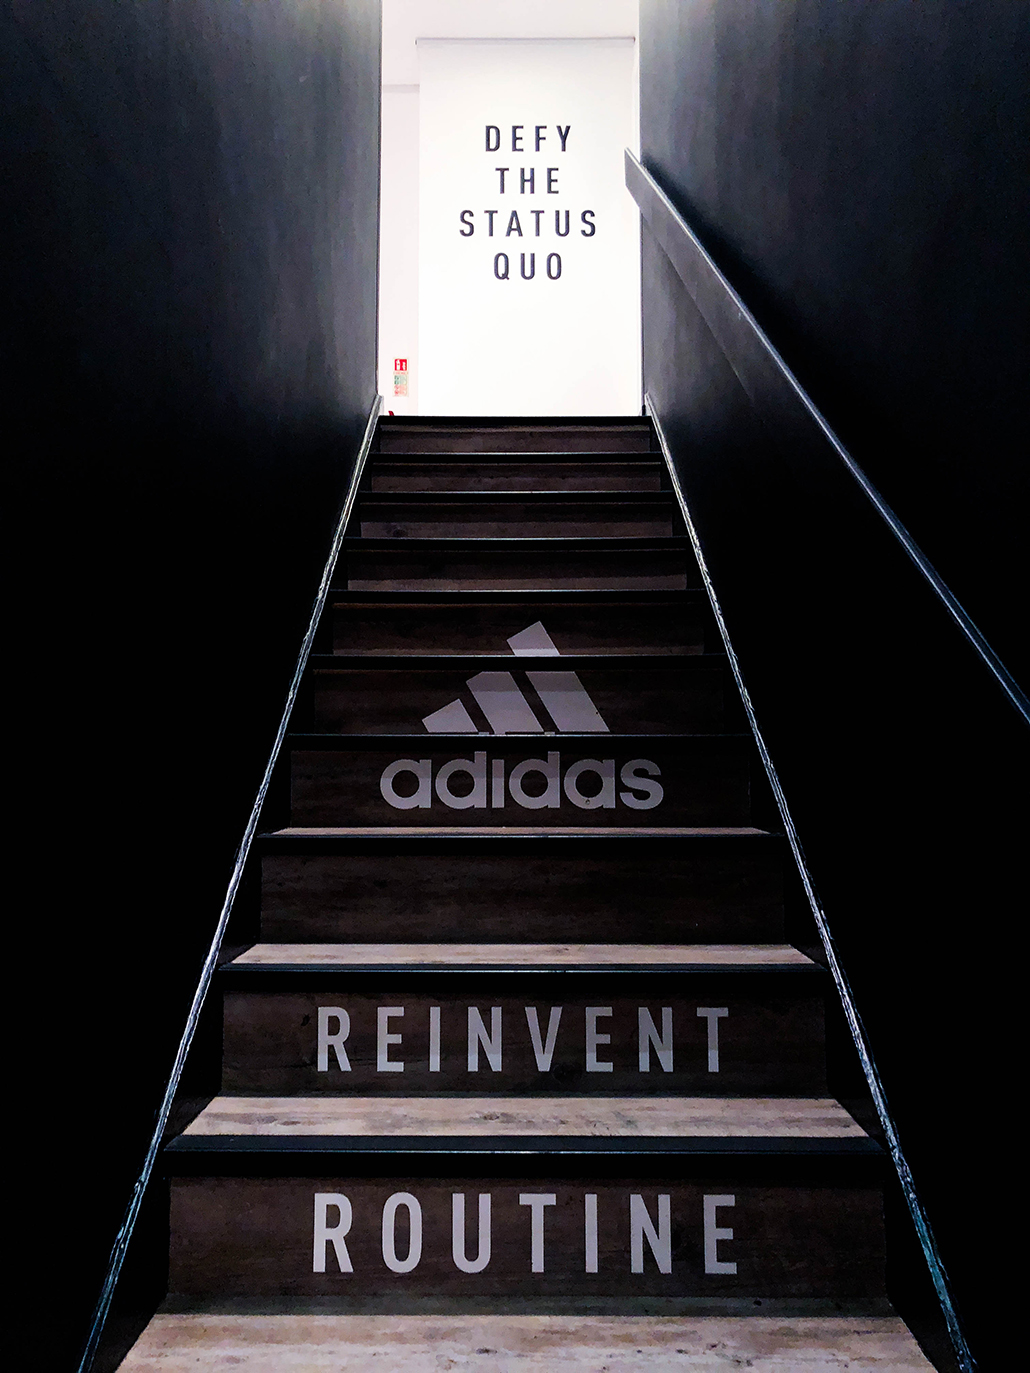 Adidas London Studio Fitness Training Runners Entrainement course à pied HIIT Londres gratuit sport free shoreditch bricklane brick lane Femme women here to create